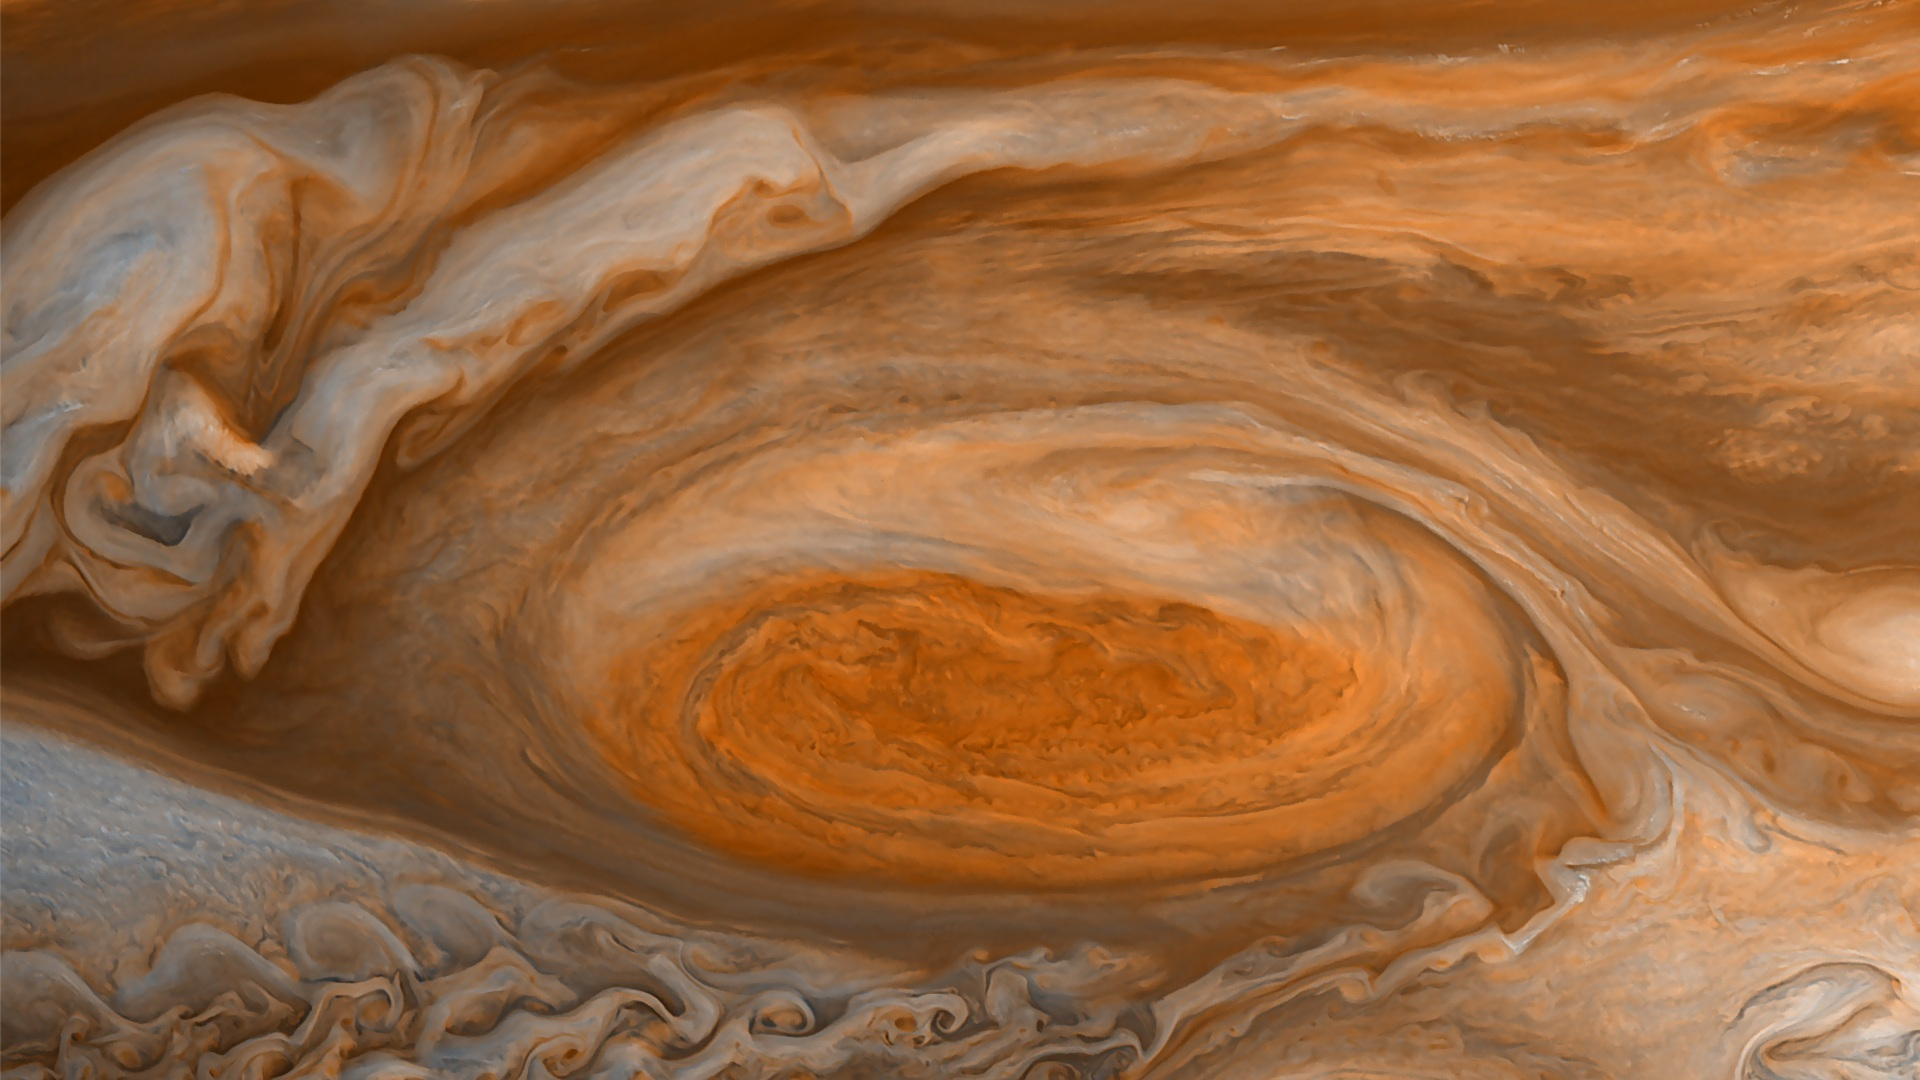 Jupiter HD Wallpaper